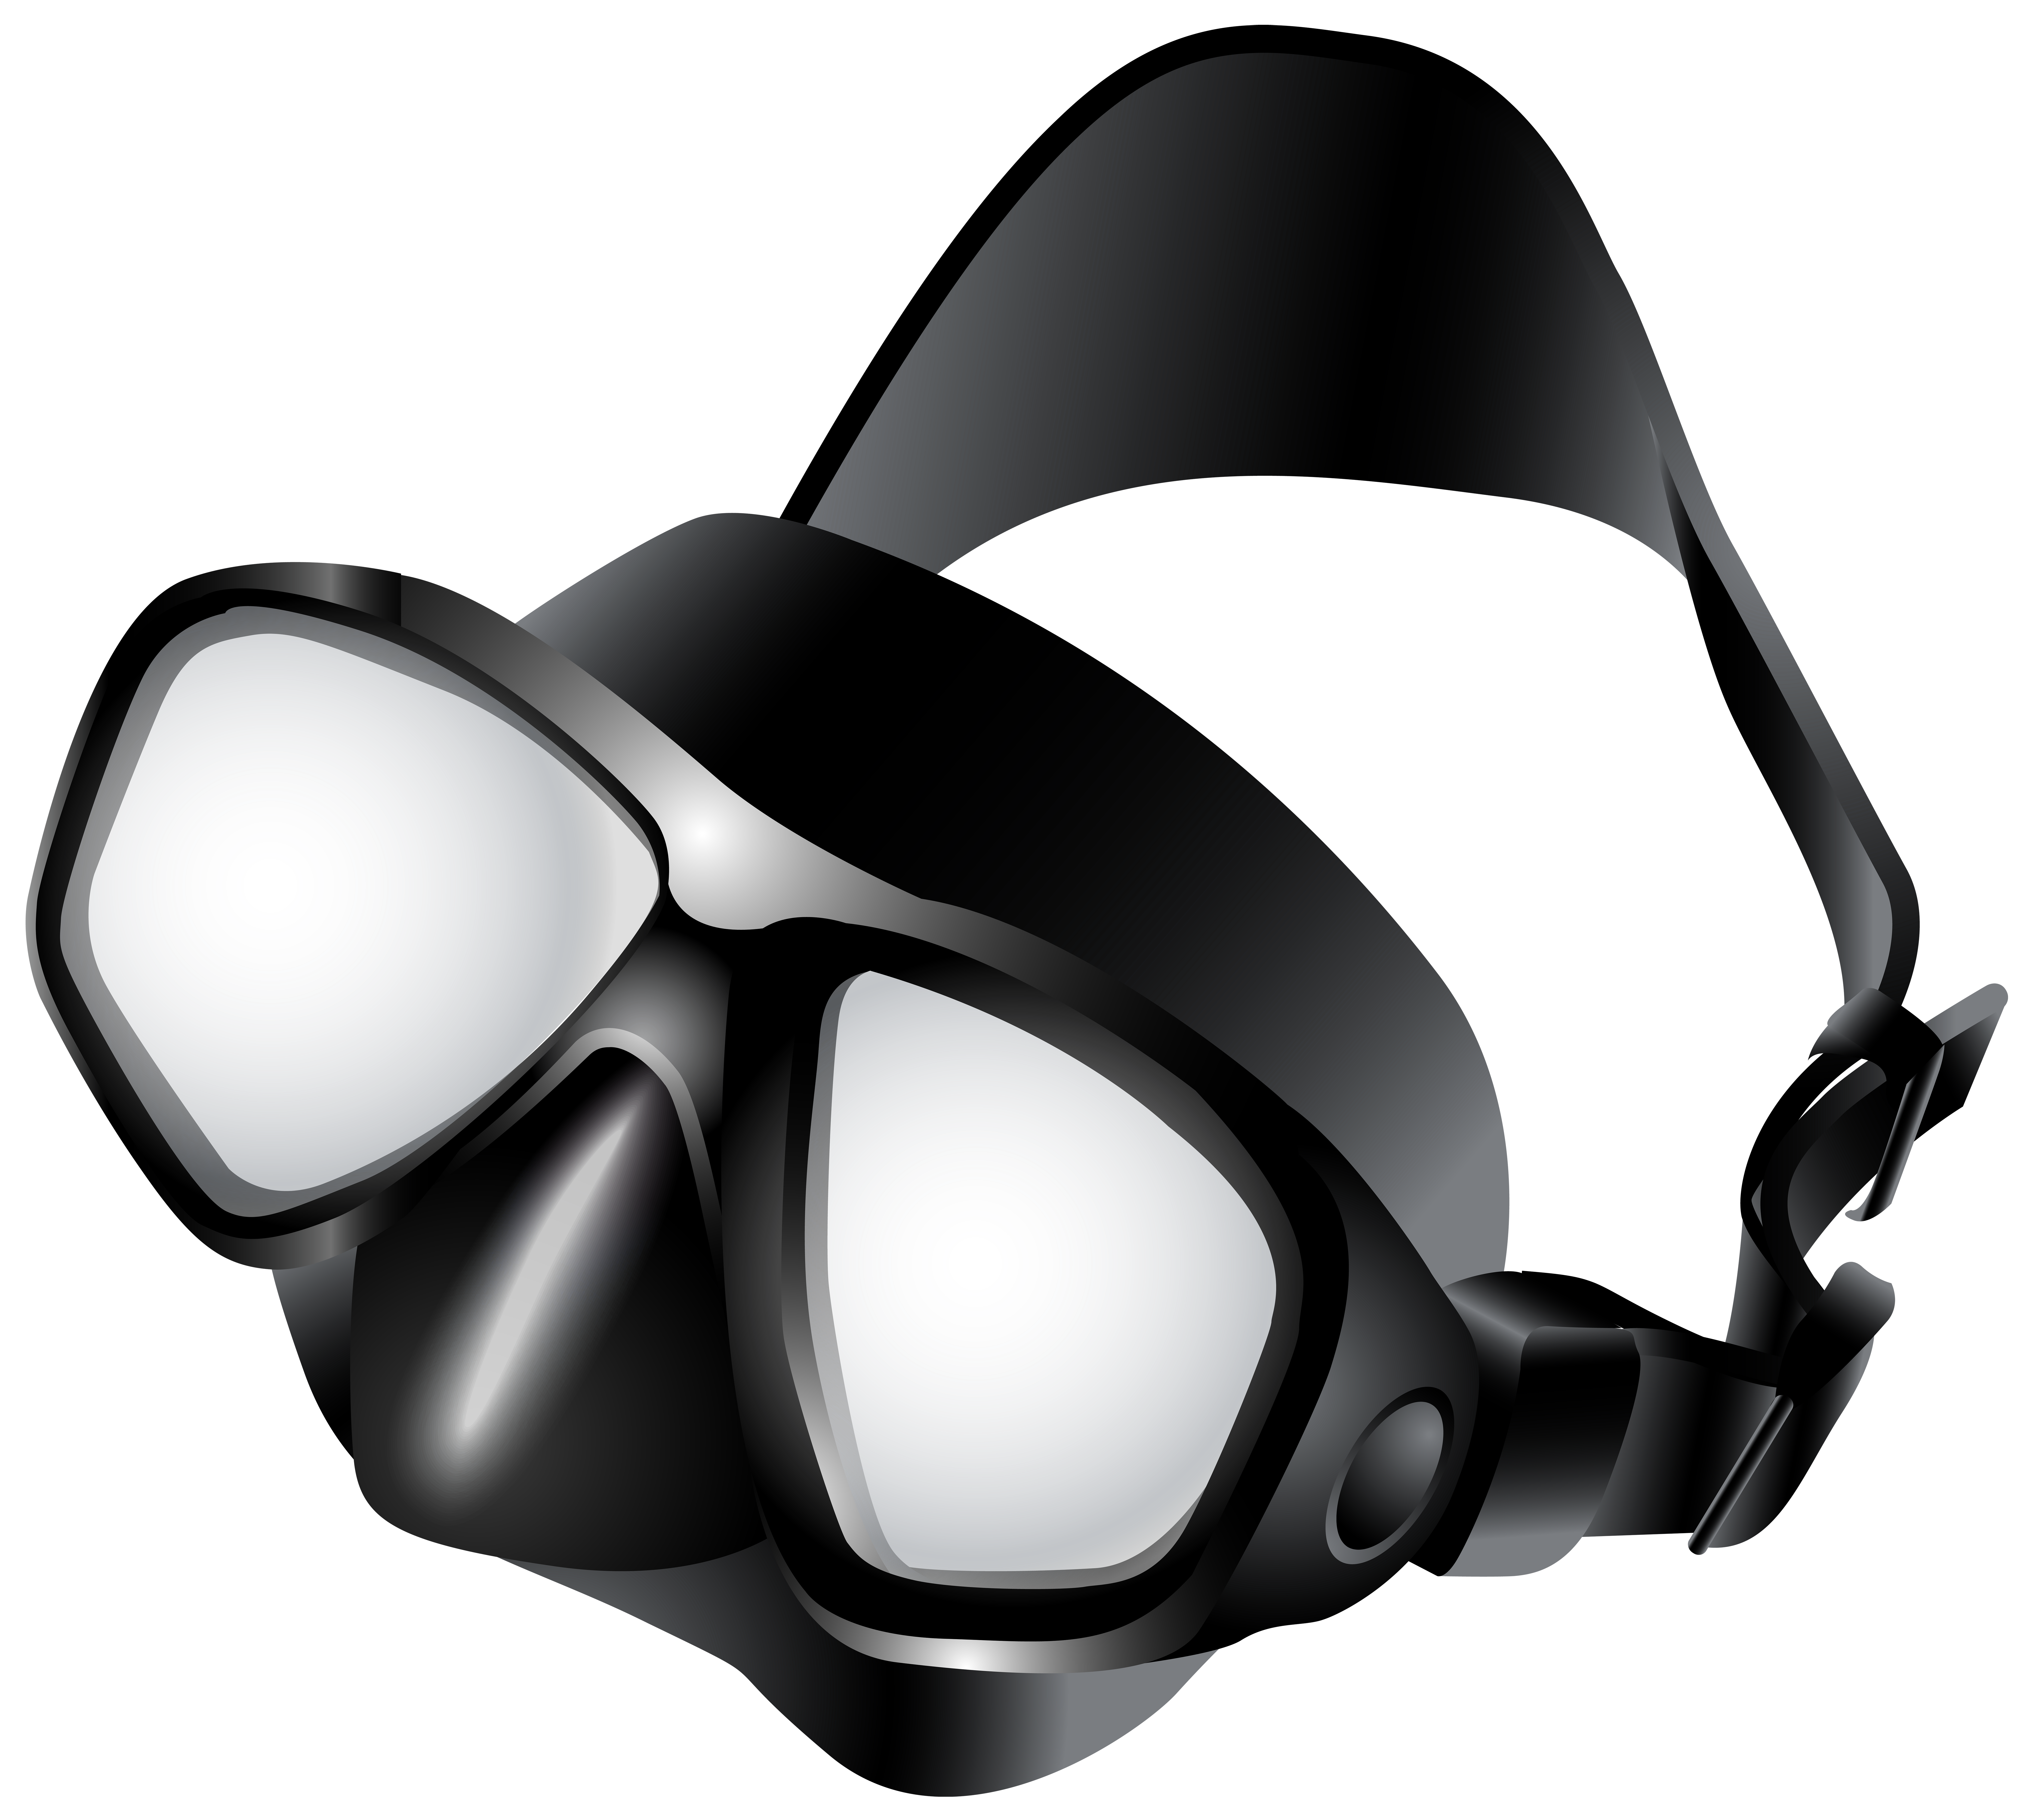 Scuba mask clipart black and white download Dive Mask PNG Clip Art - Best WEB Clipart black and white download